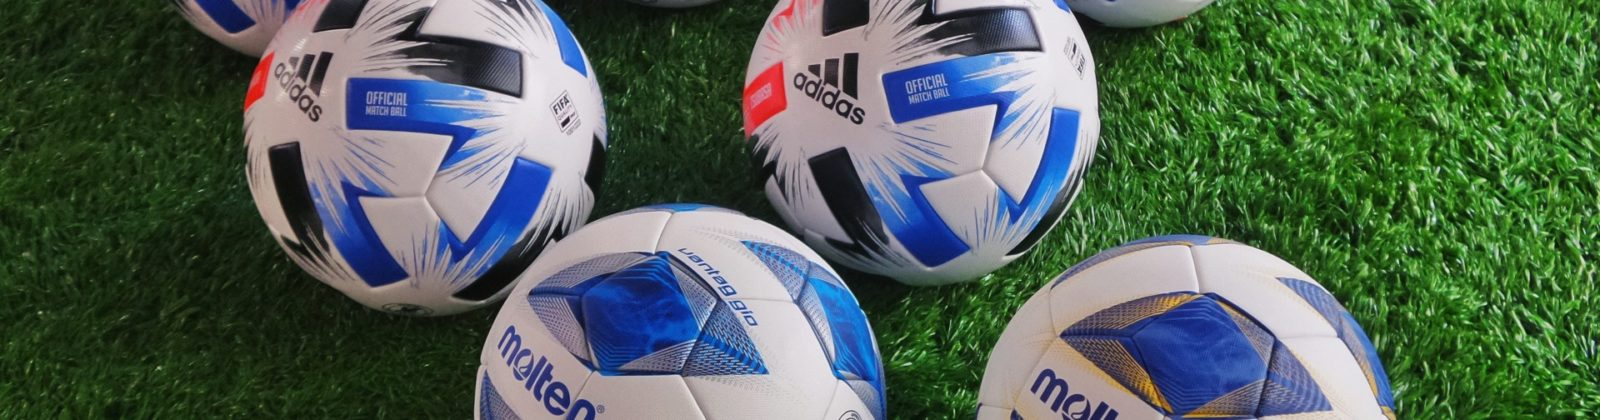 blue and white soccer ball